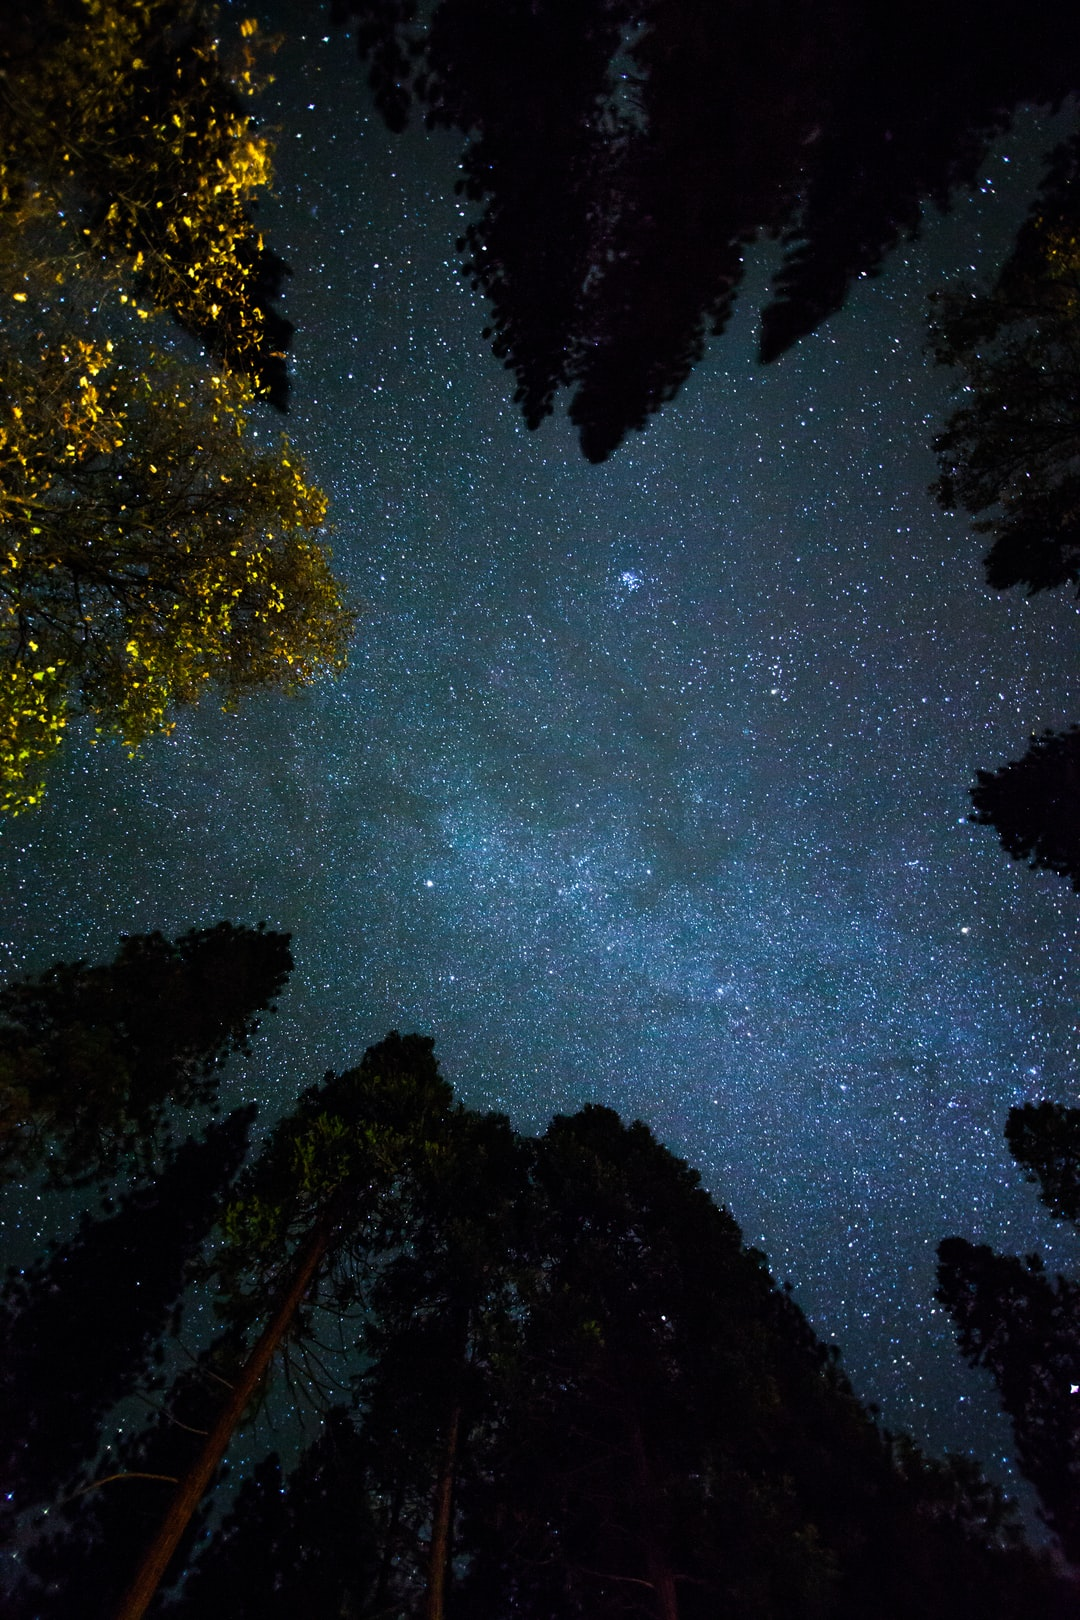 Wallpaper galaxy wallpapers galaxy background and space - Space night sky wallpaper ...